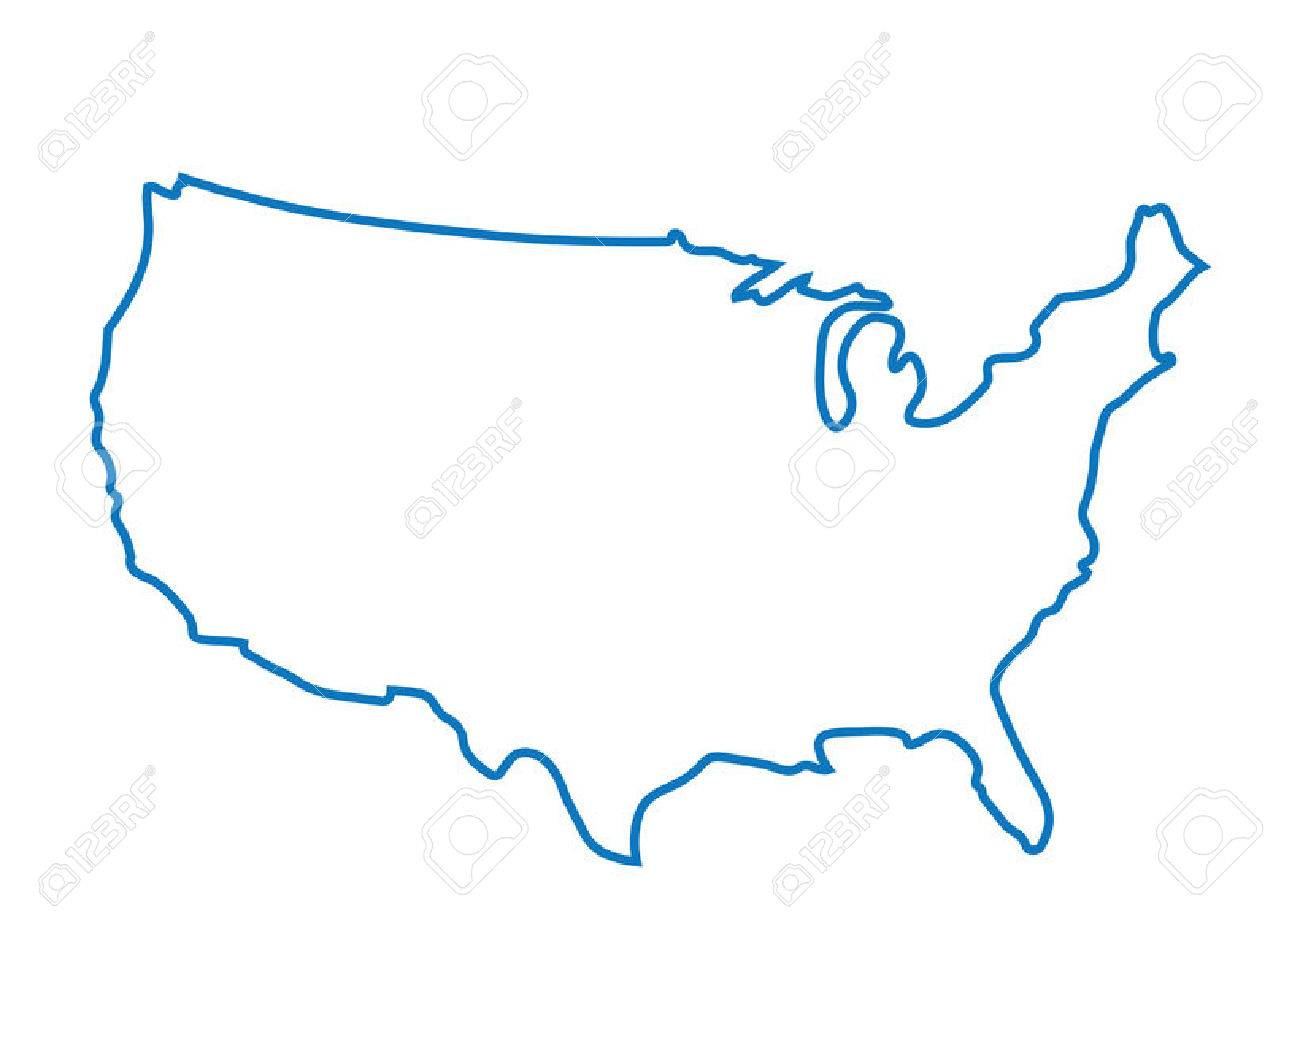 blue abstract map of United States - 37073589